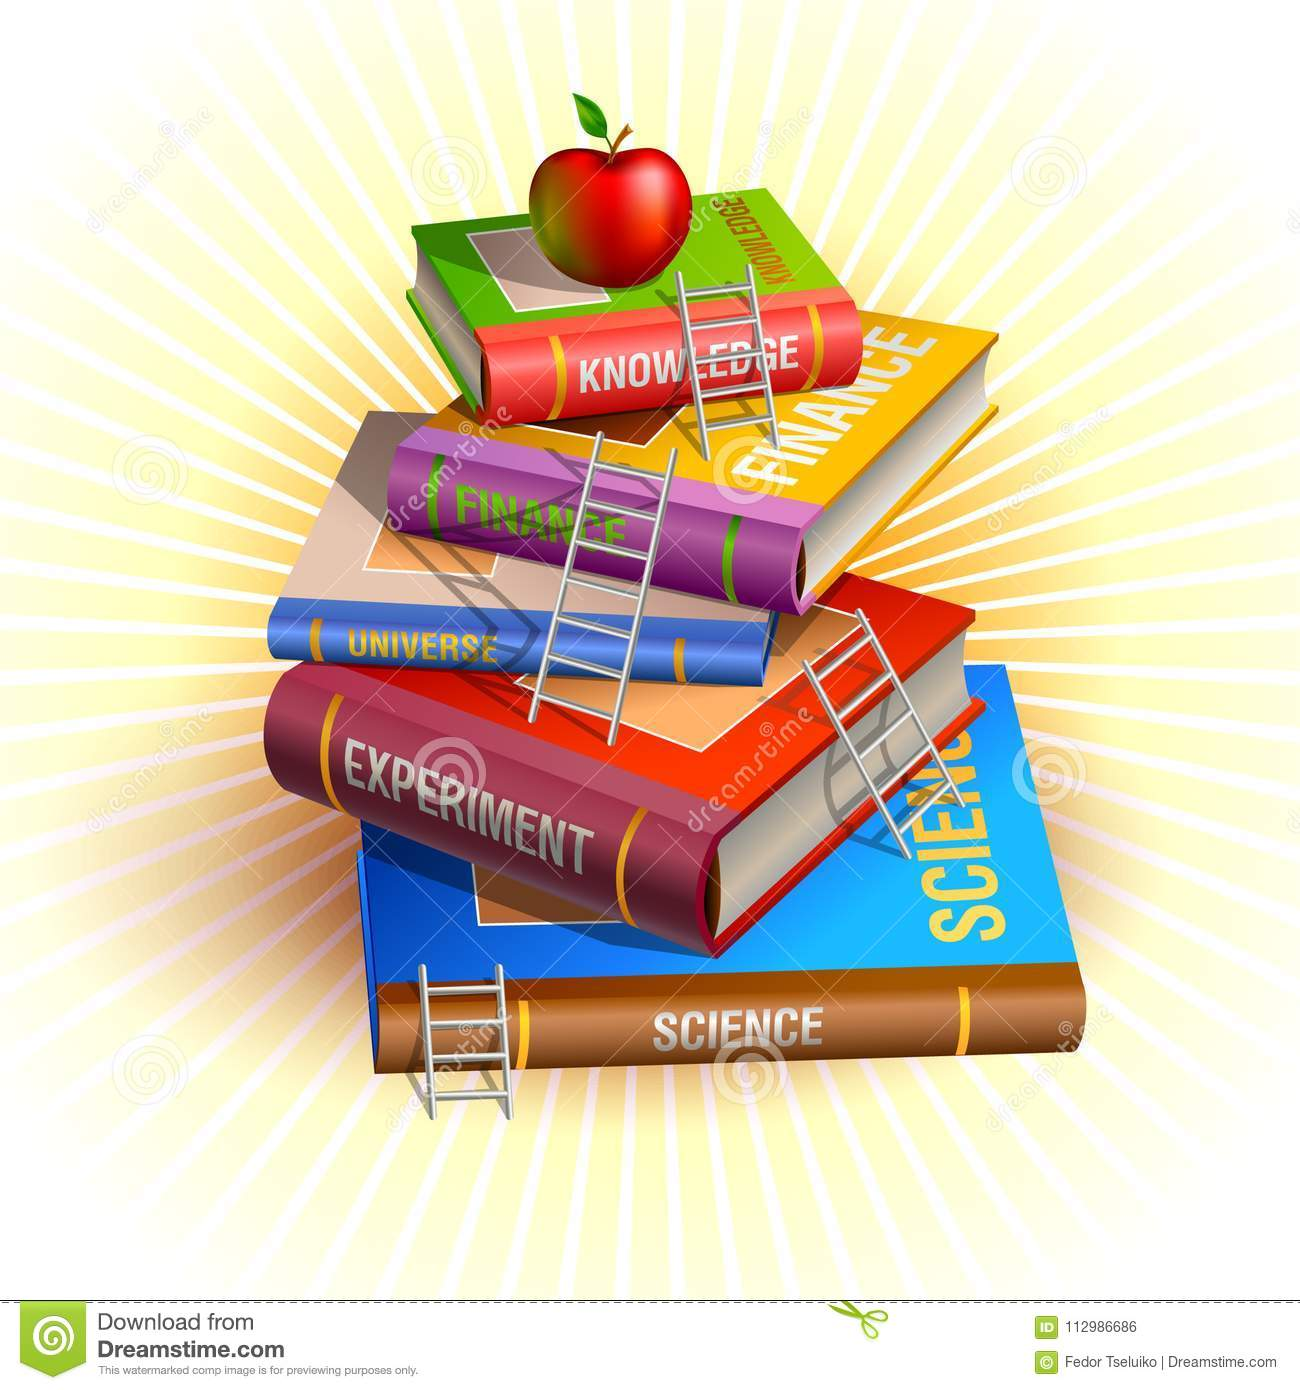 Knowledge pyramid hierarchy illustration. Books stairs and apple at the top